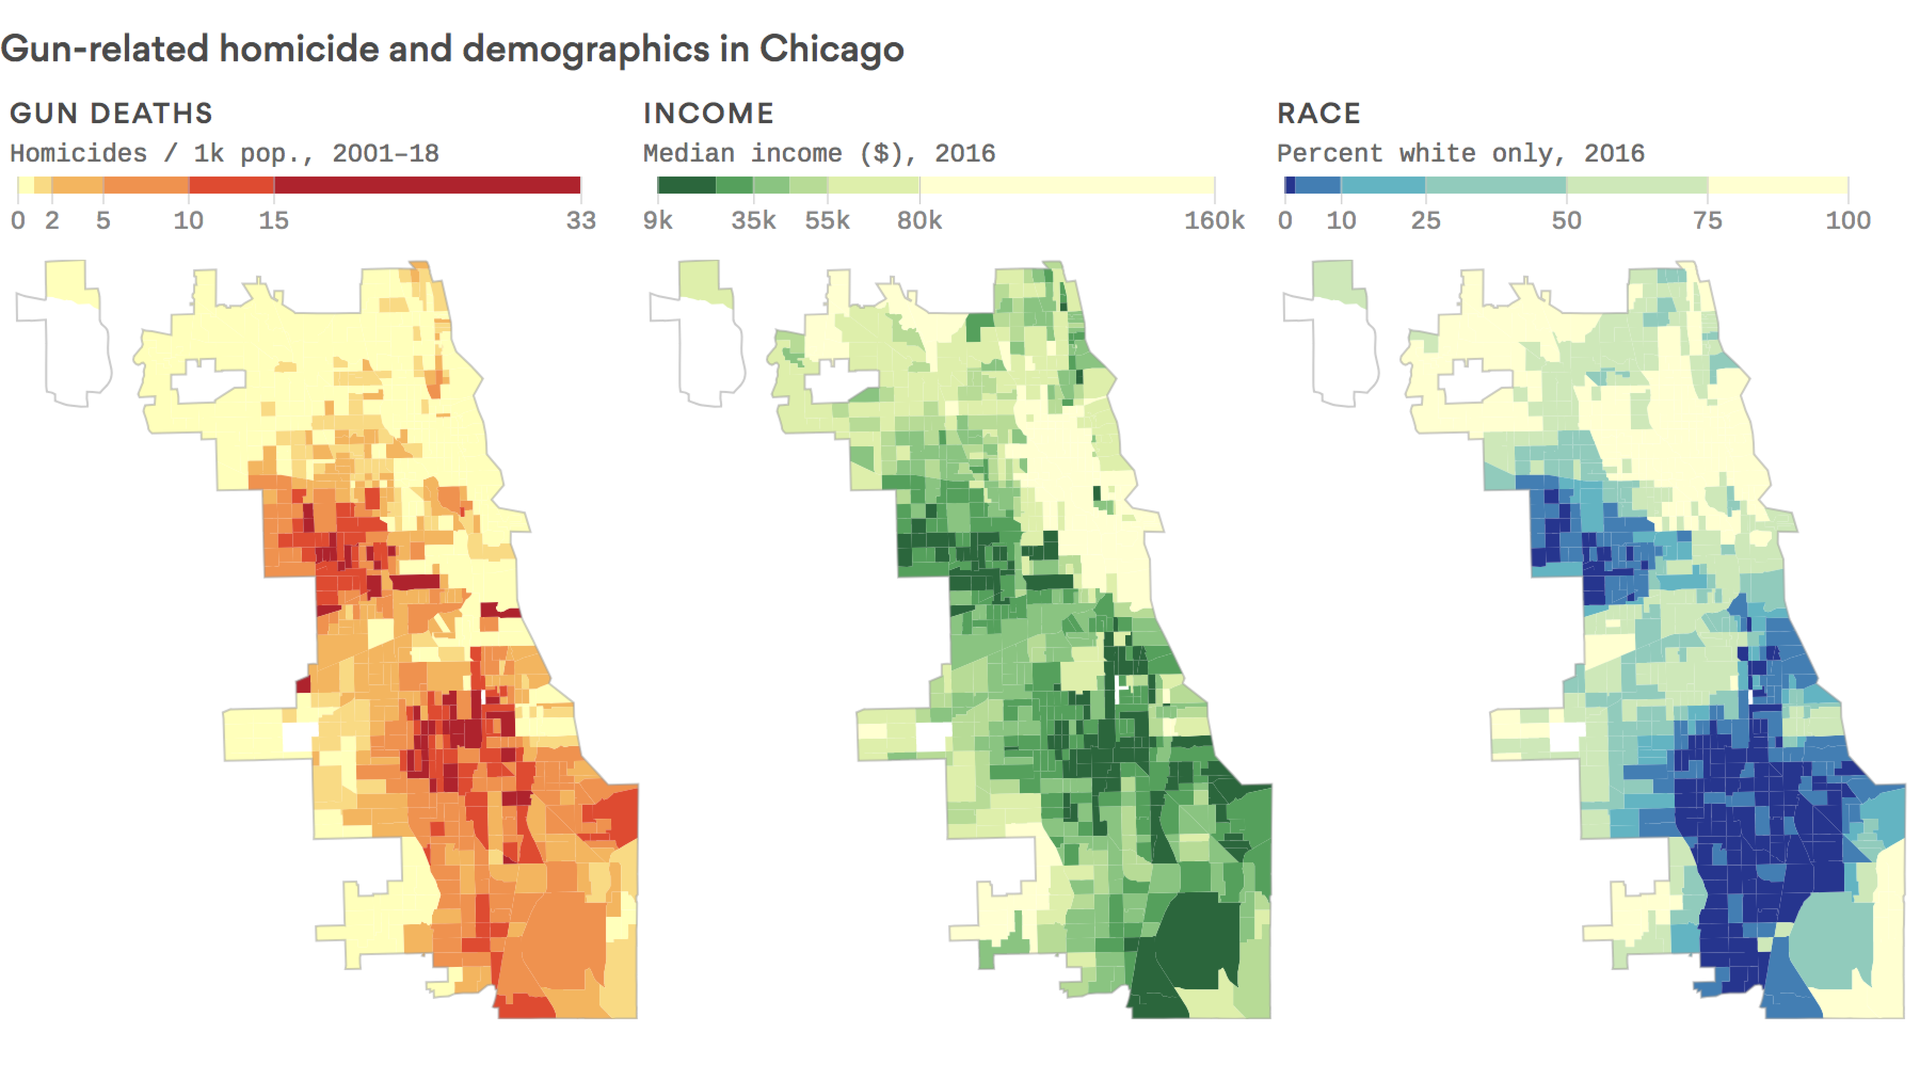 Chicago Violence Map The deadliest city: Why Chicago's gun violence is getting worse